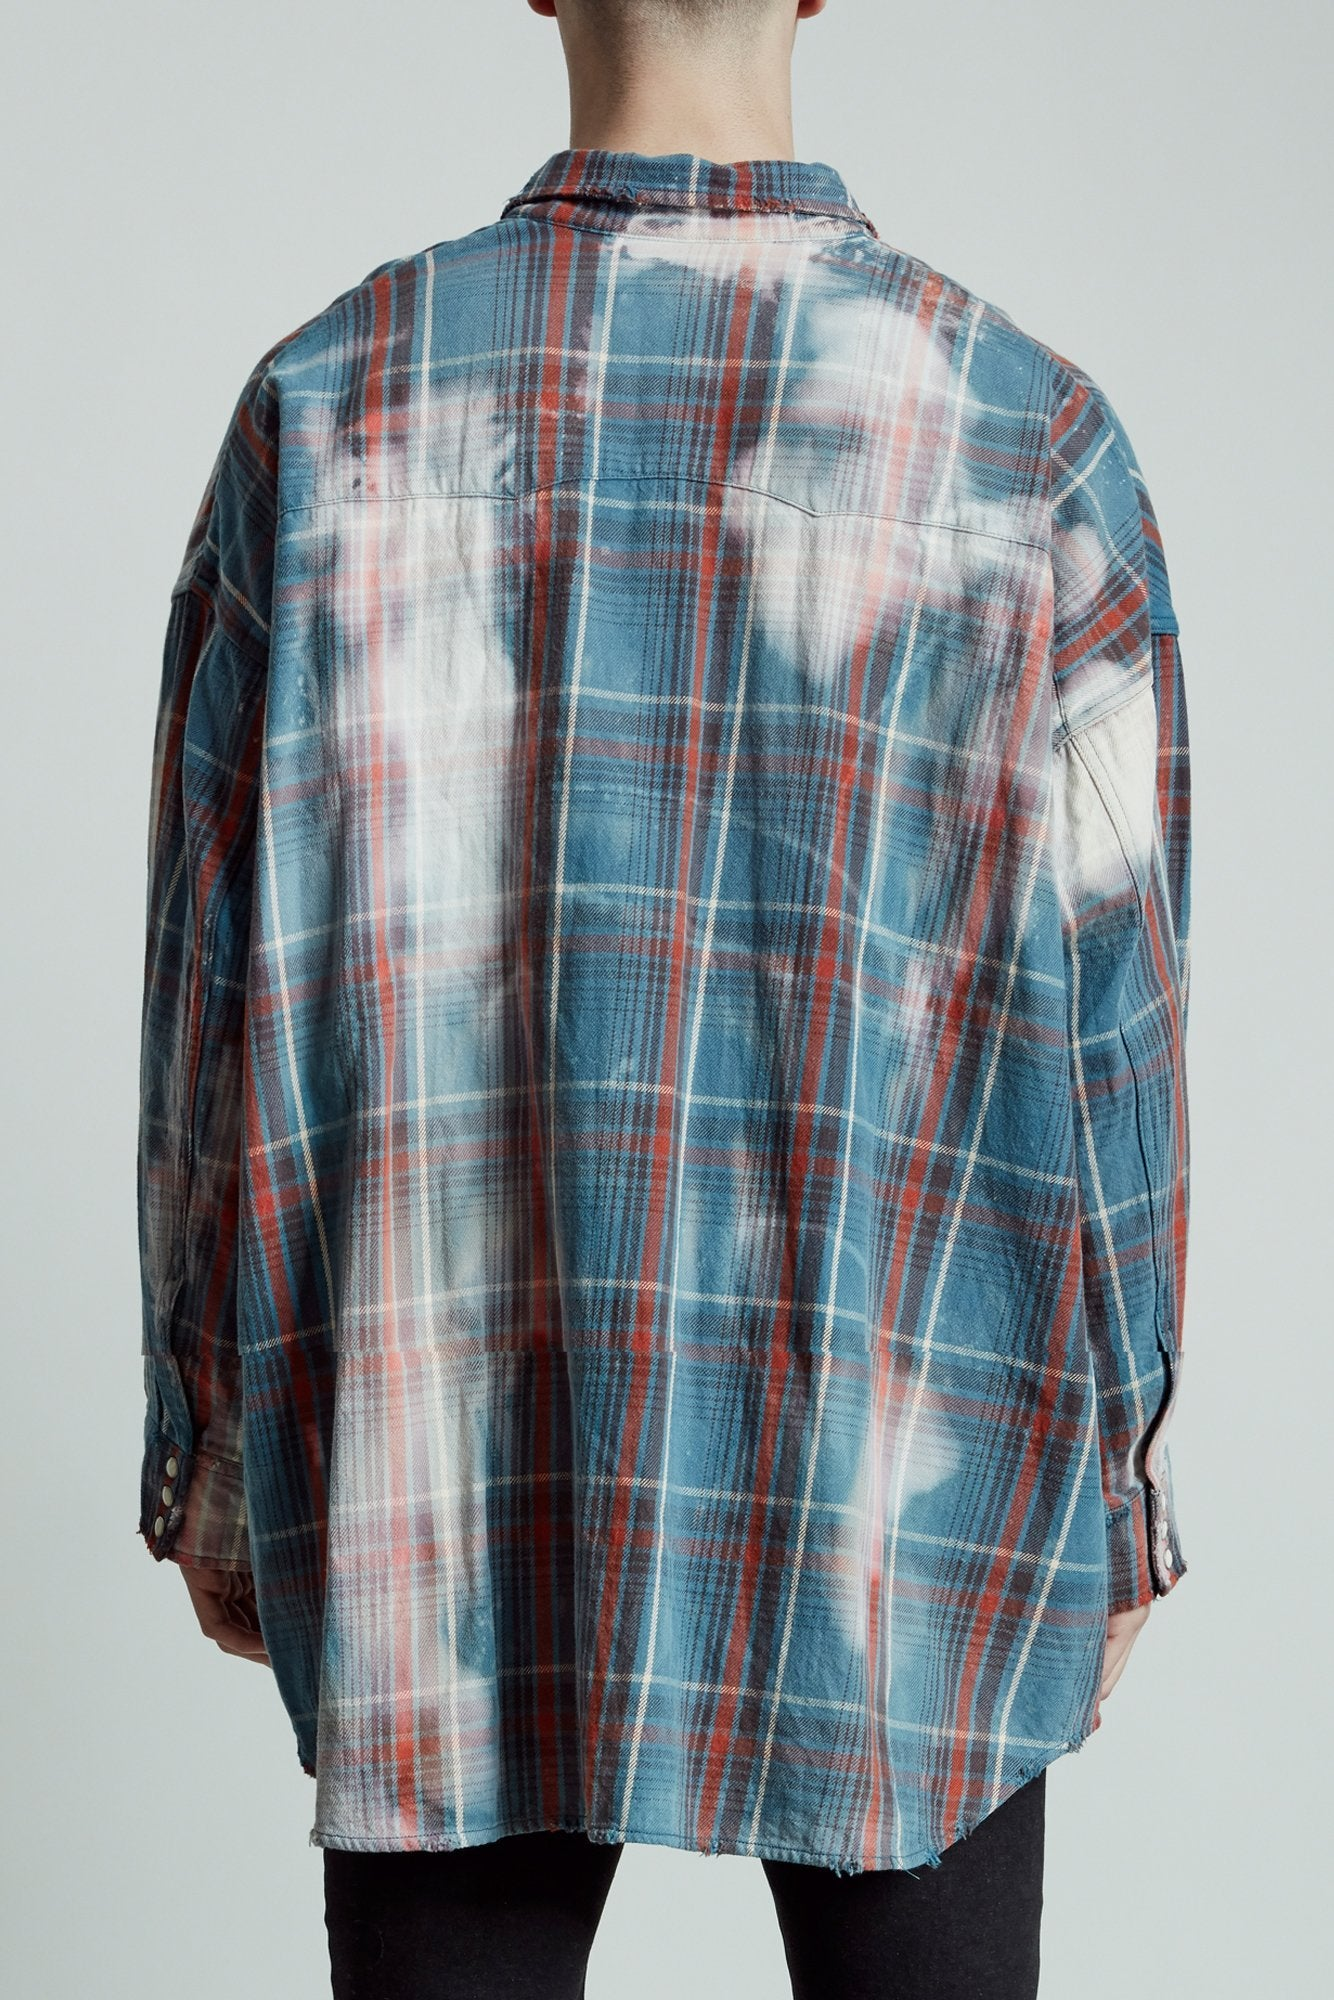 Oversized Cowboy Shirt - Blue Plaid with Bleach Stains